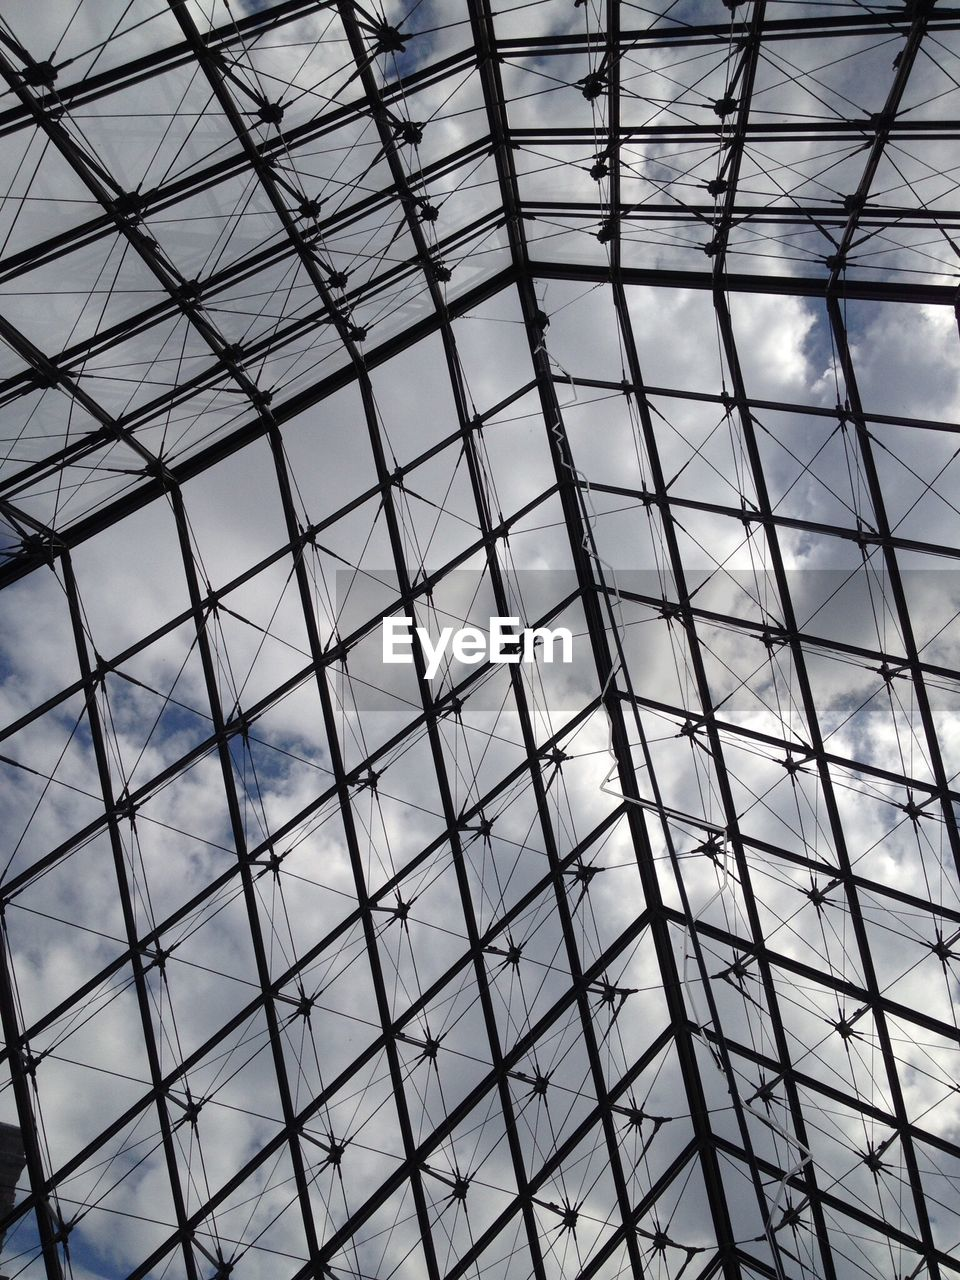 built structure, pattern, architecture, full frame, low angle view, backgrounds, no people, geometric shape, ceiling, glass - material, modern, day, indoors, design, metal, shape, transparent, building, architectural feature, skylight, office building exterior, glass, steel, directly below